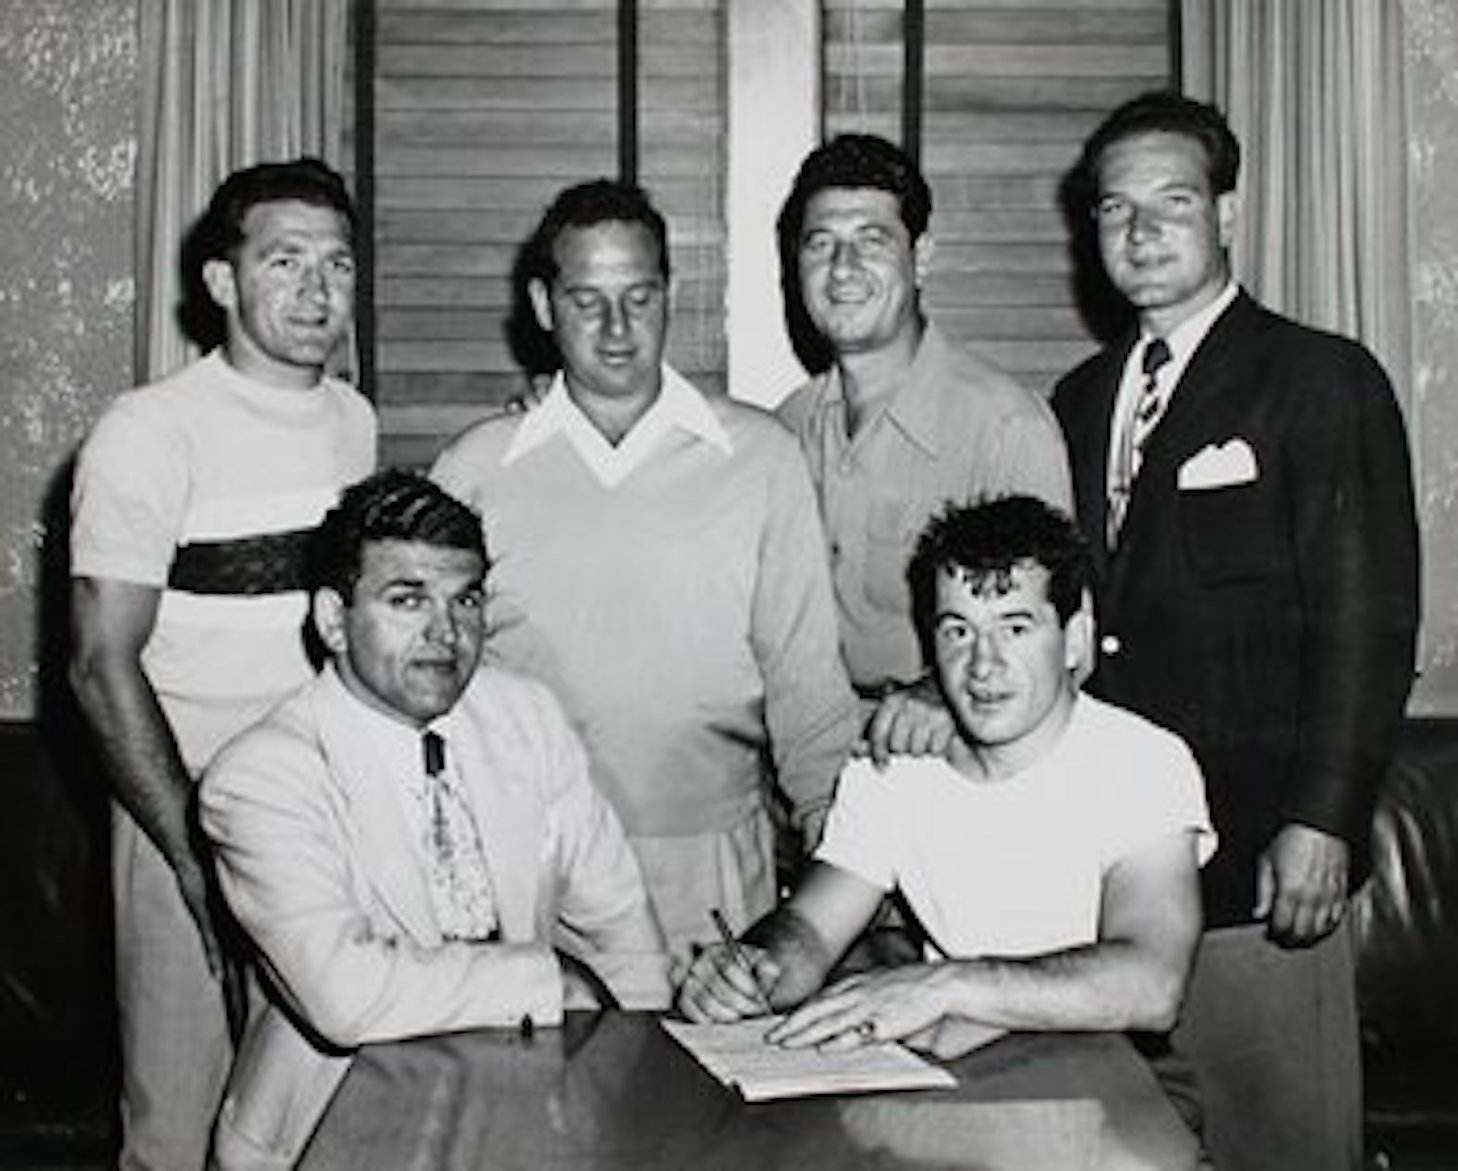 Ralph Tribuani with middleweight champion Rocky Graziano.  The Wilmington promoter helped restore Graziano's boxng career   after the boxer failed to report a bribe attempt.